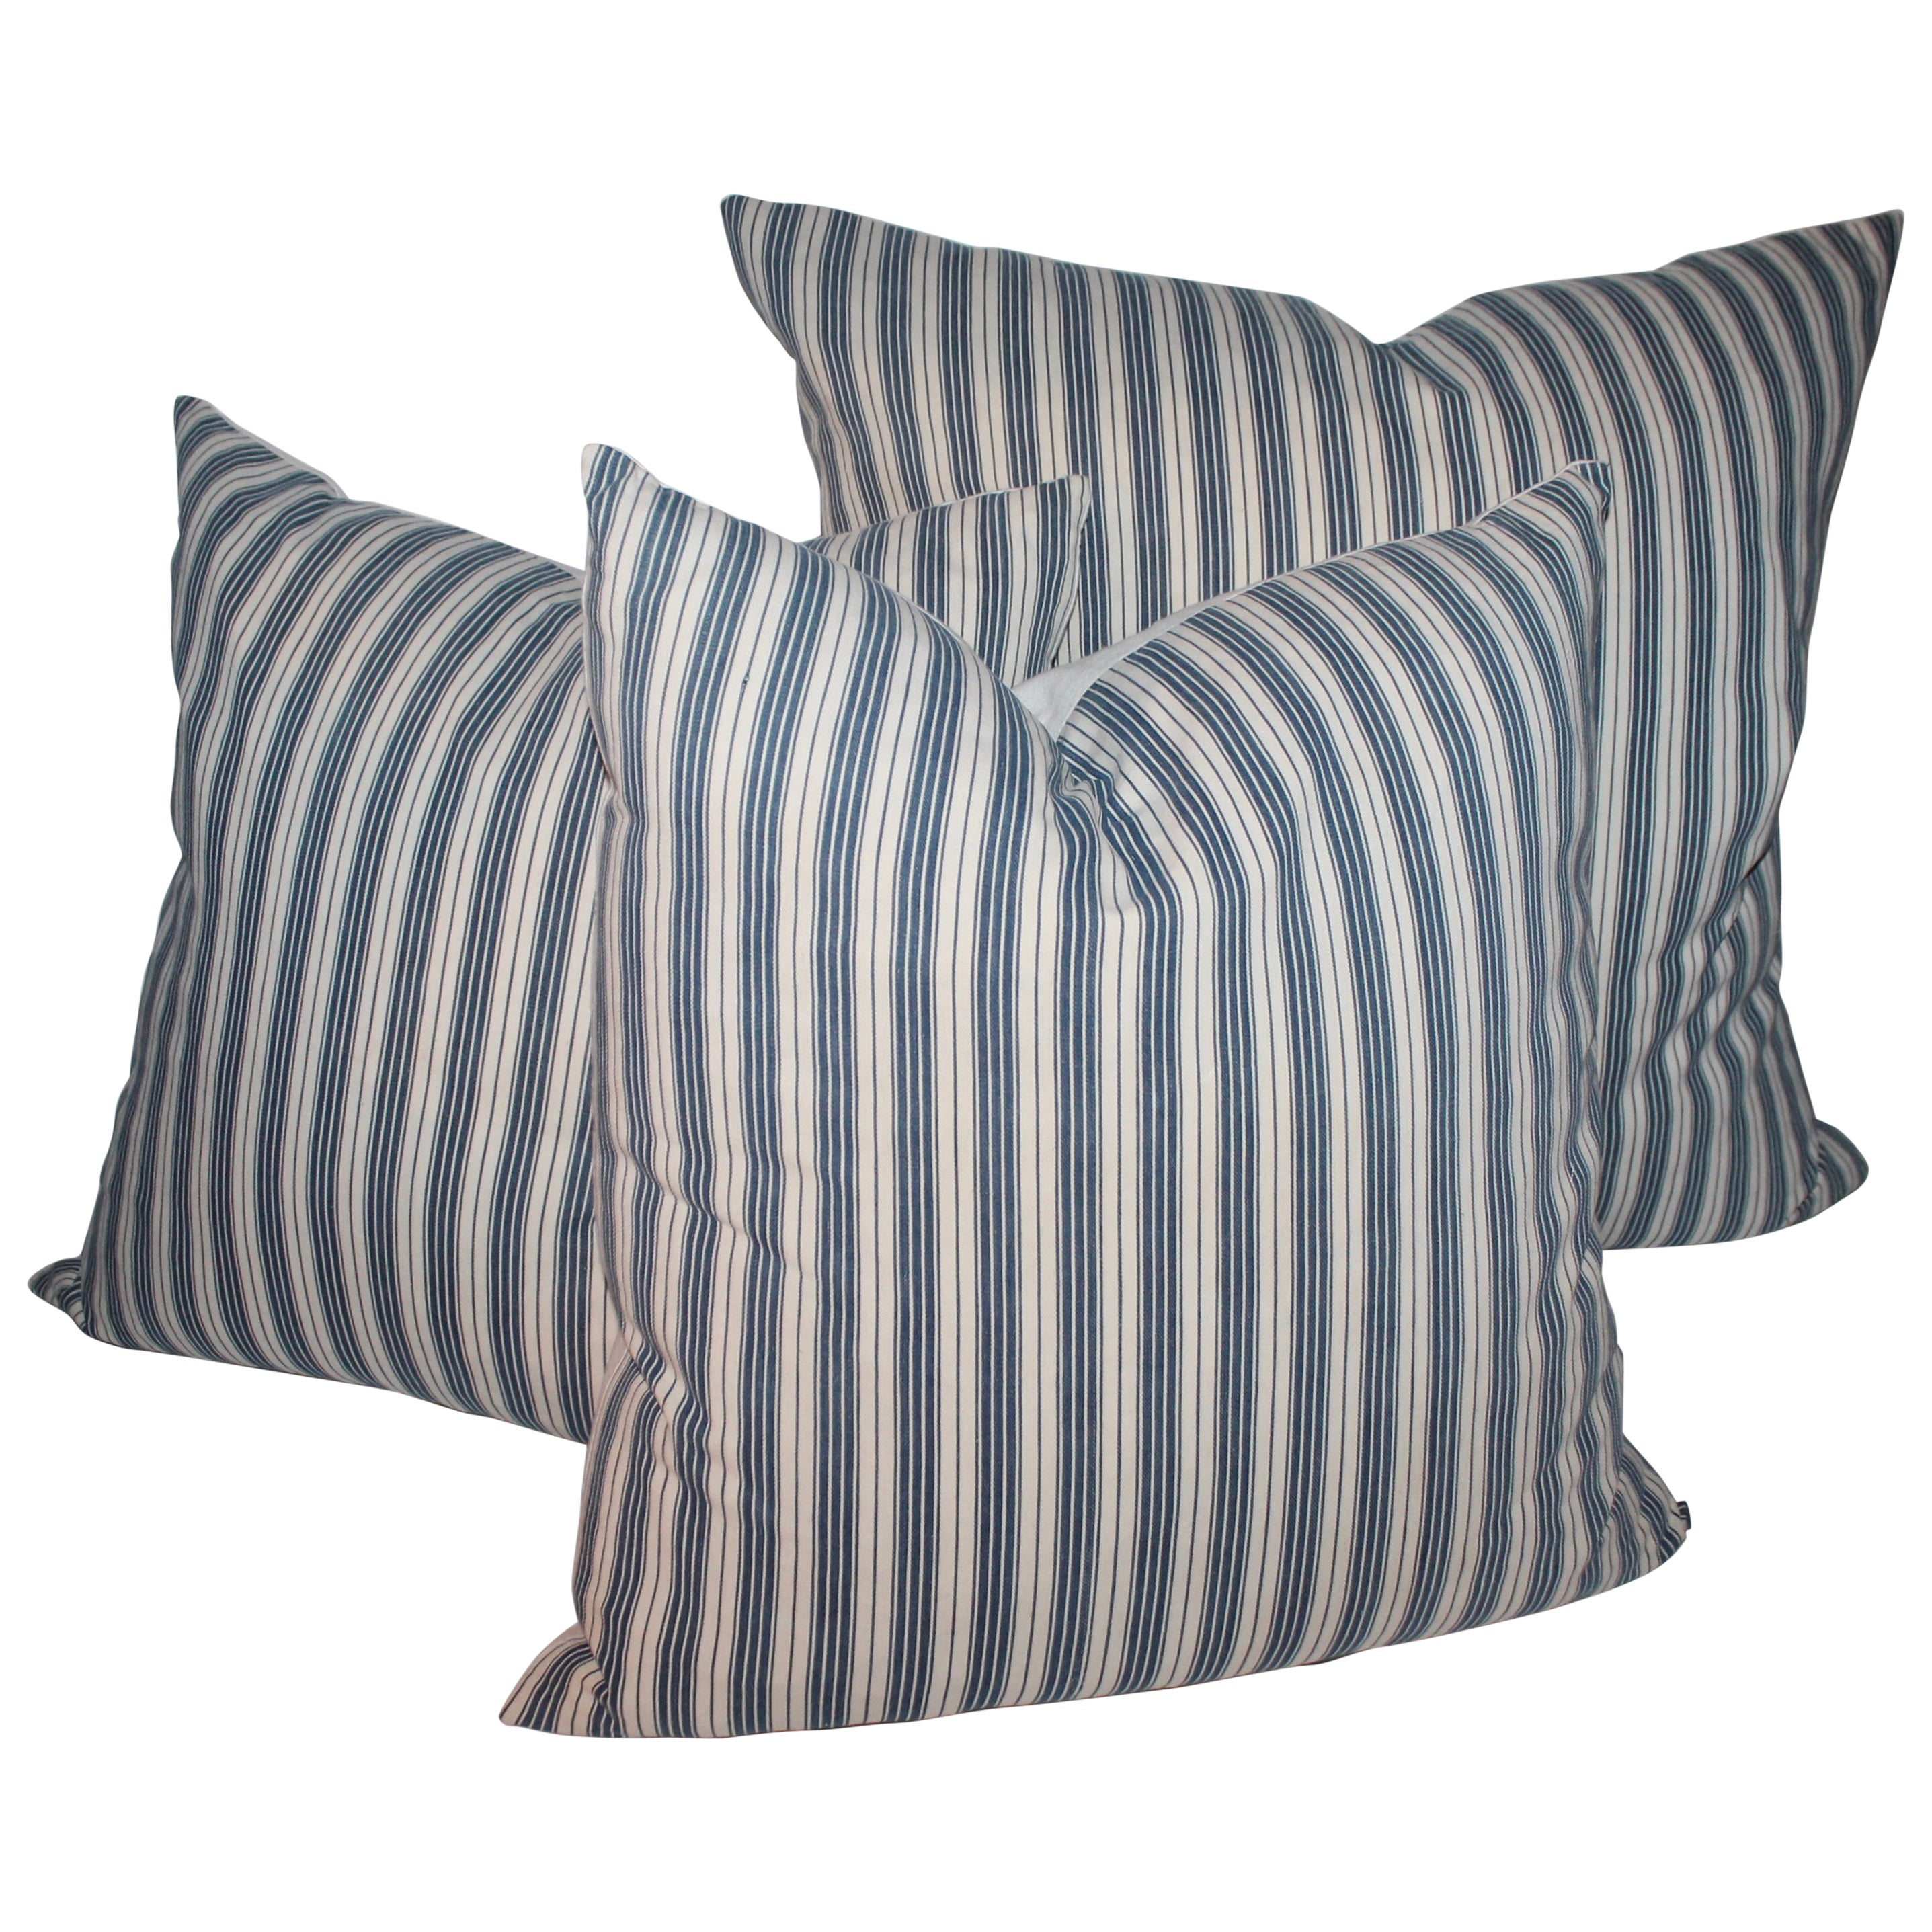 Collection of Three 19th Century B & W Ticking Pillows